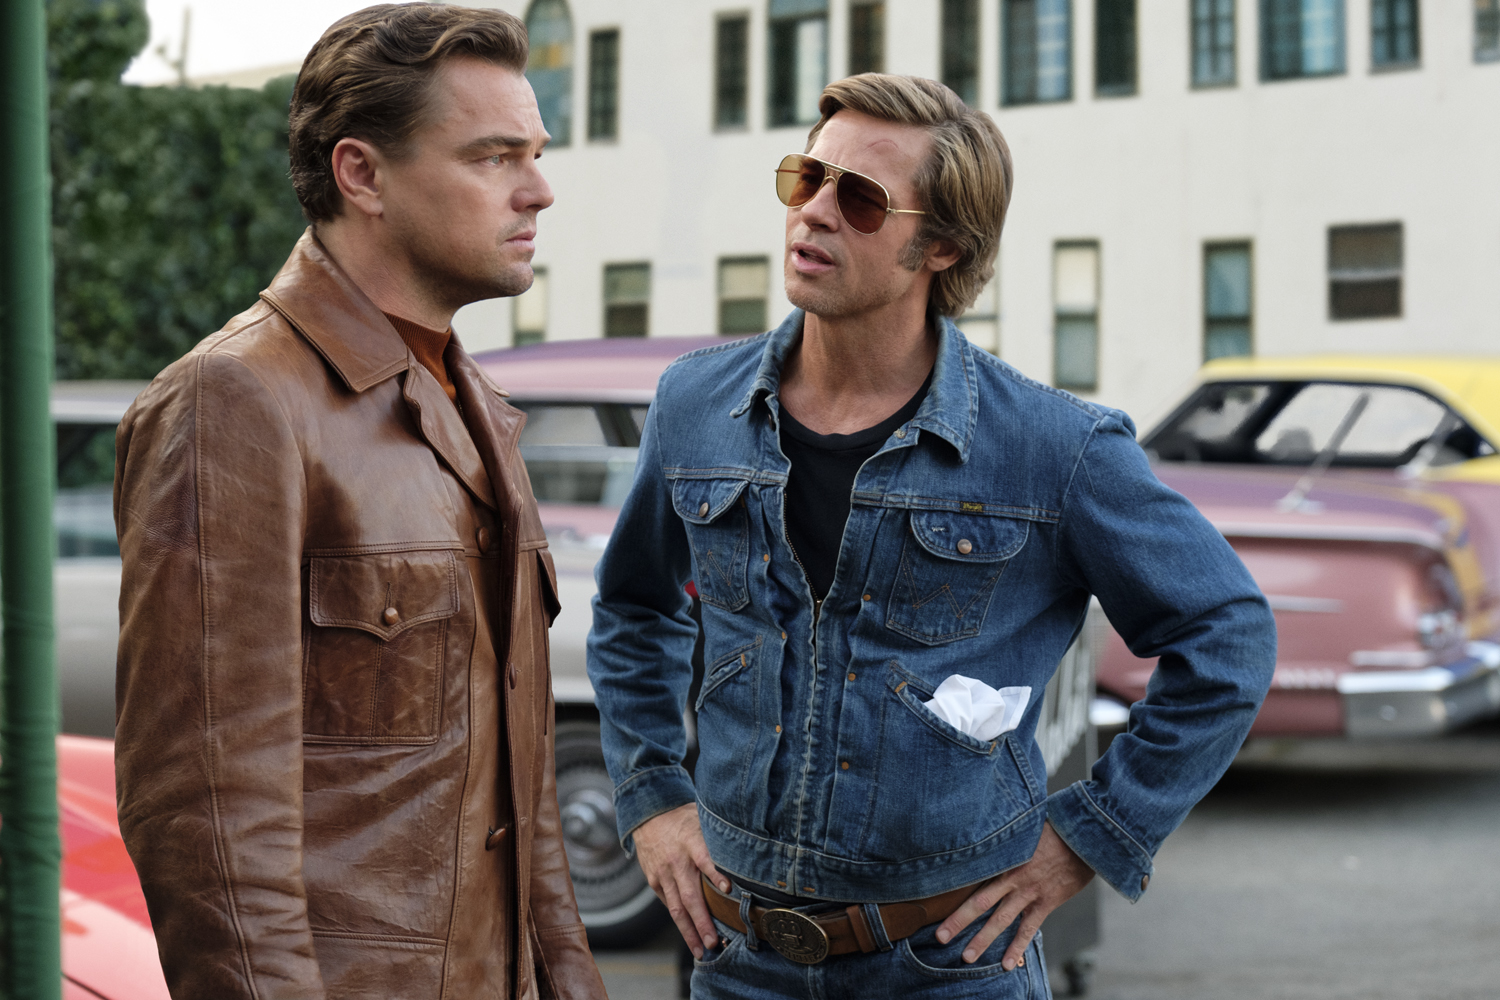 onceuponatimeinhollywood texnes plus